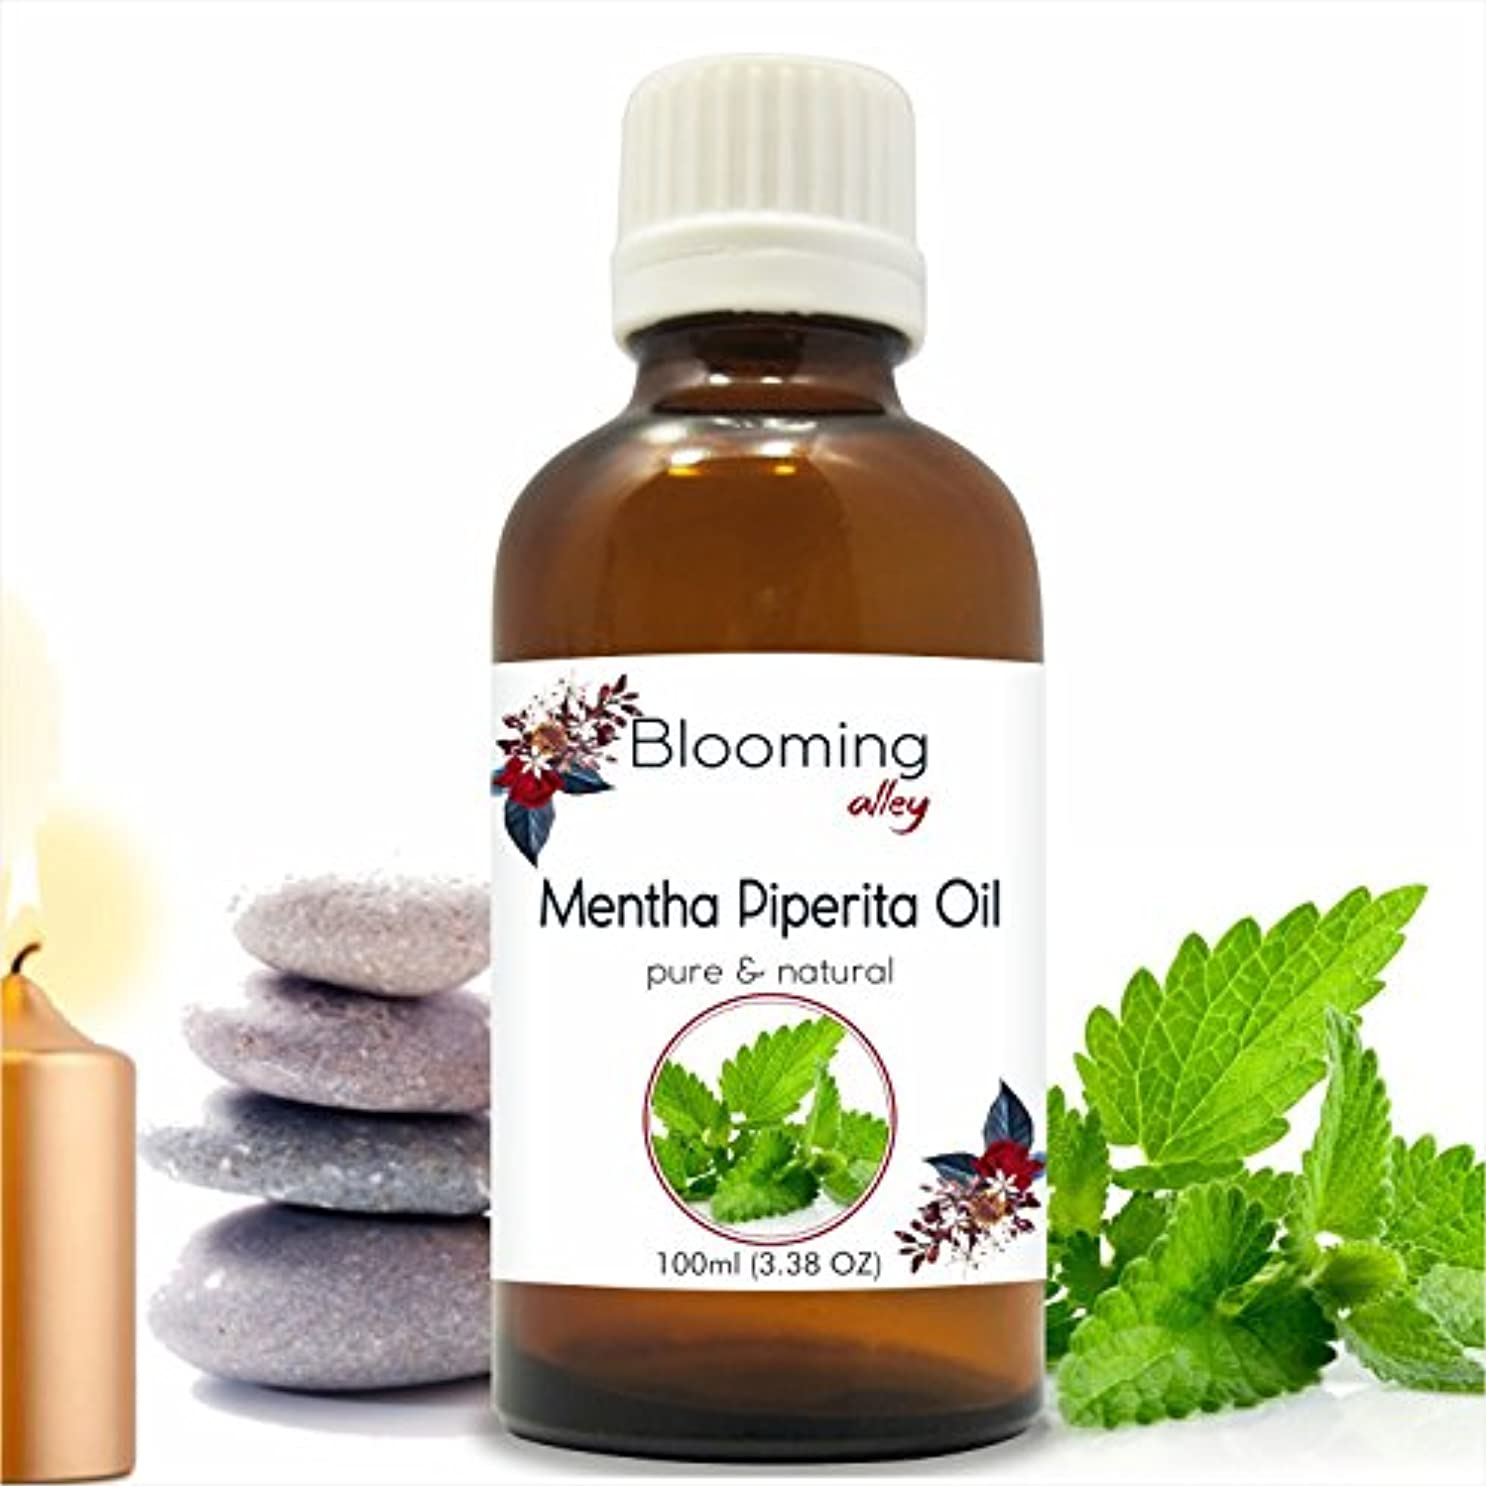 エクスタシー落胆した閉じるMenthapipreta Oil(Mentha Piperita) Essential Oil 100 ml or 3.38 Fl Oz by Blooming Alley